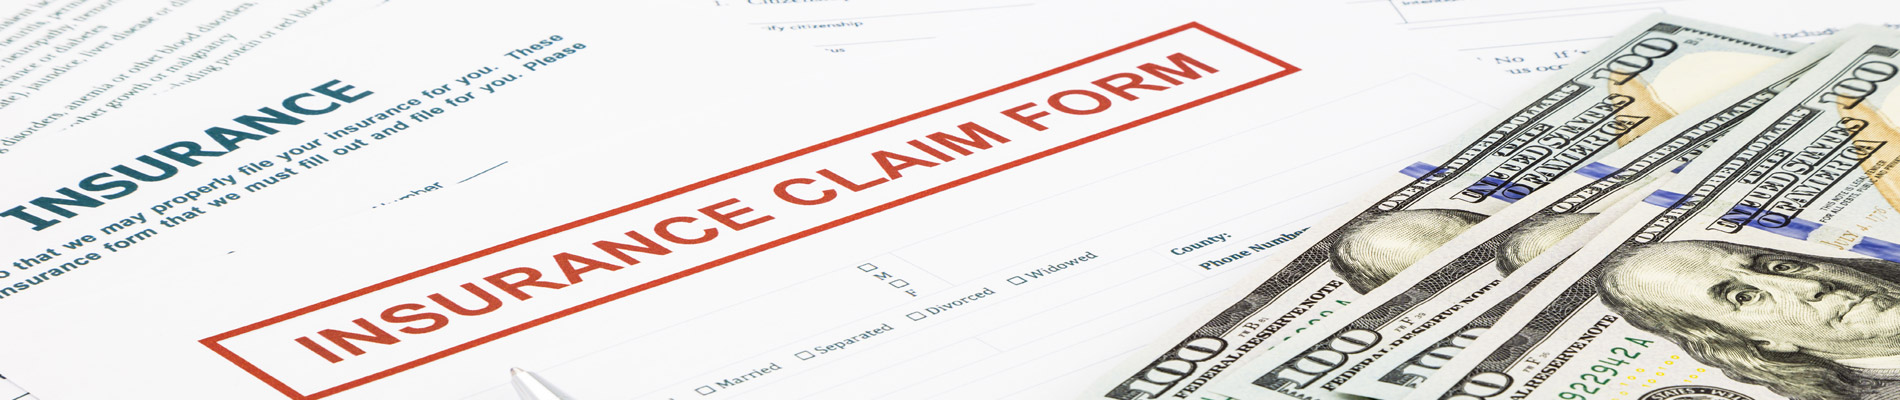 How Lack Of (or Unclear) Terms of Conditions Lead to Bad Faith Insurance Claims